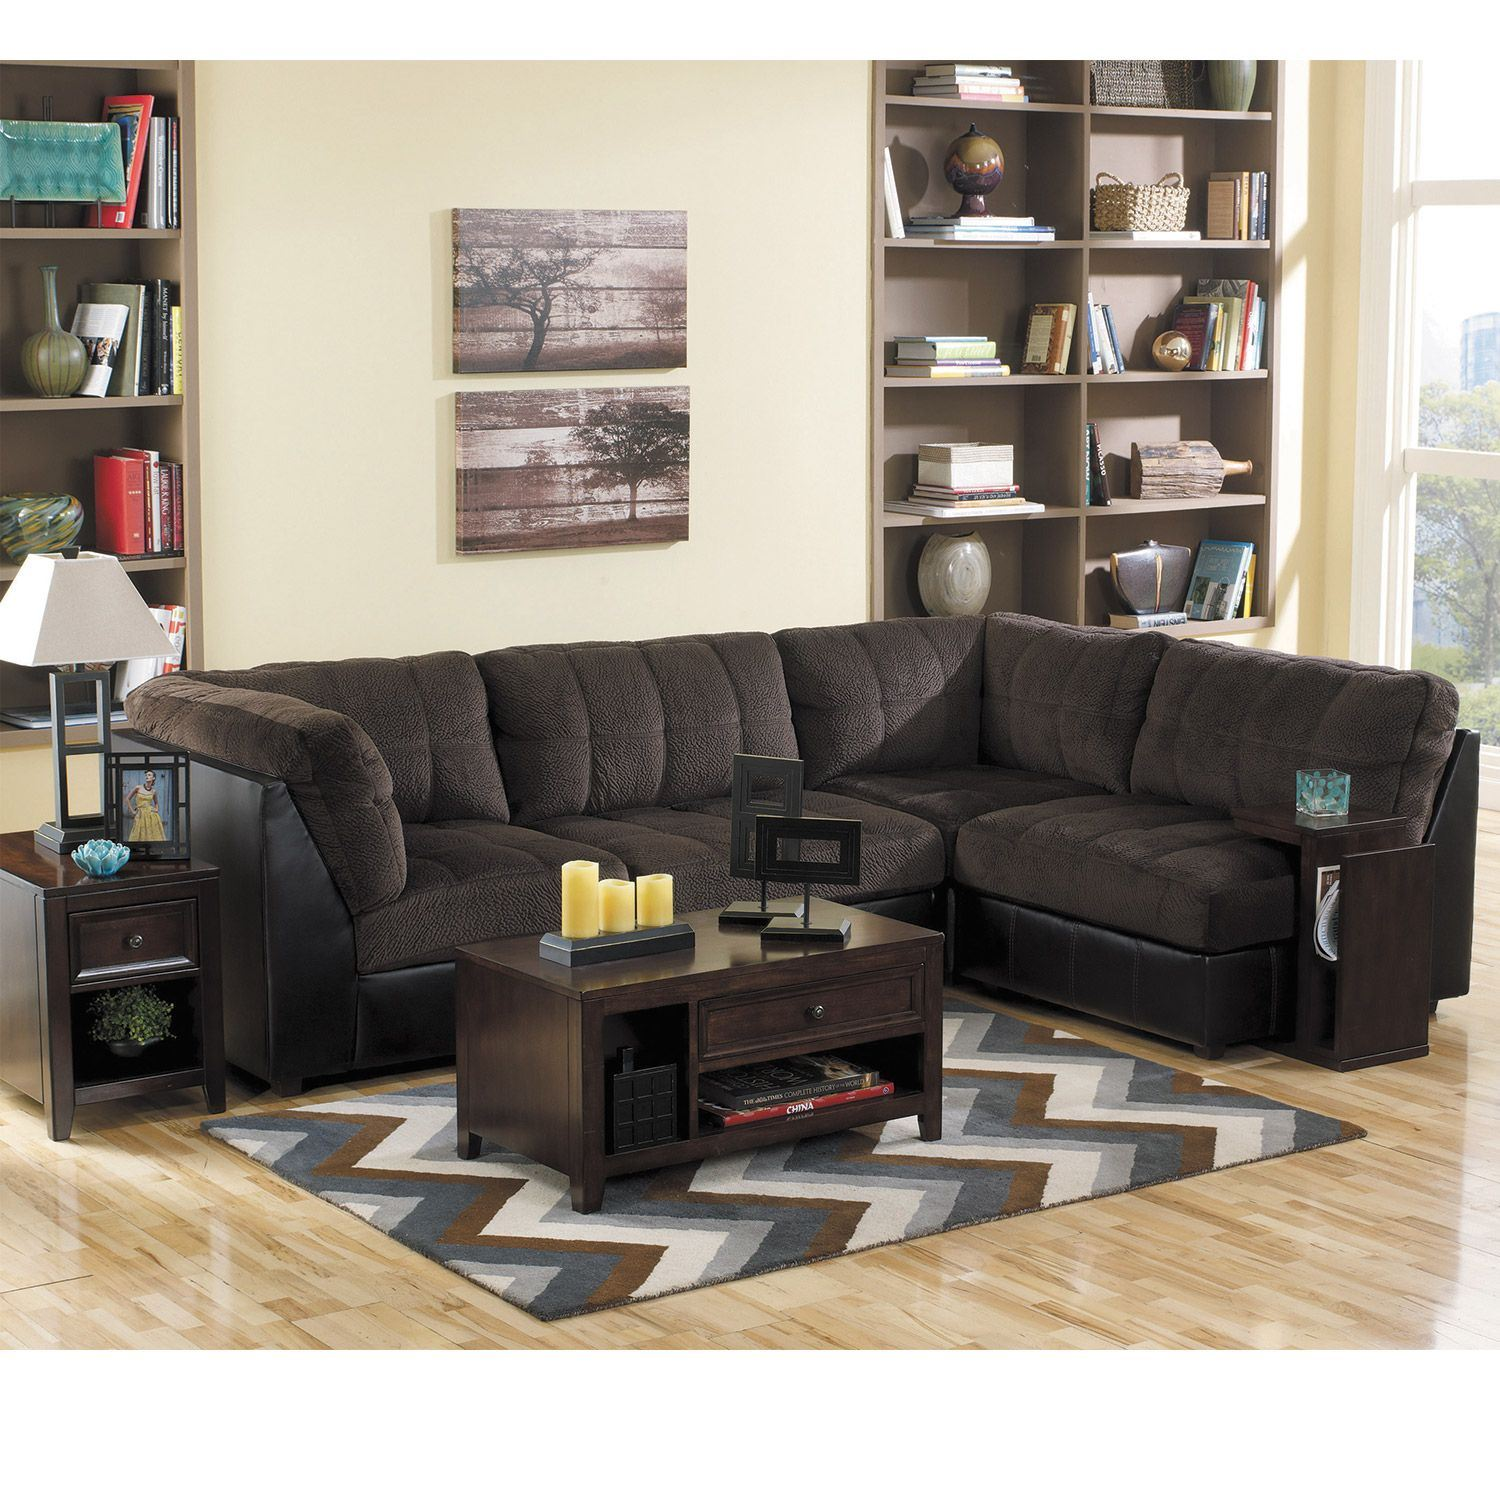 Discount living room furniture 100 buy living room chairs for Cheap wholesale furniture